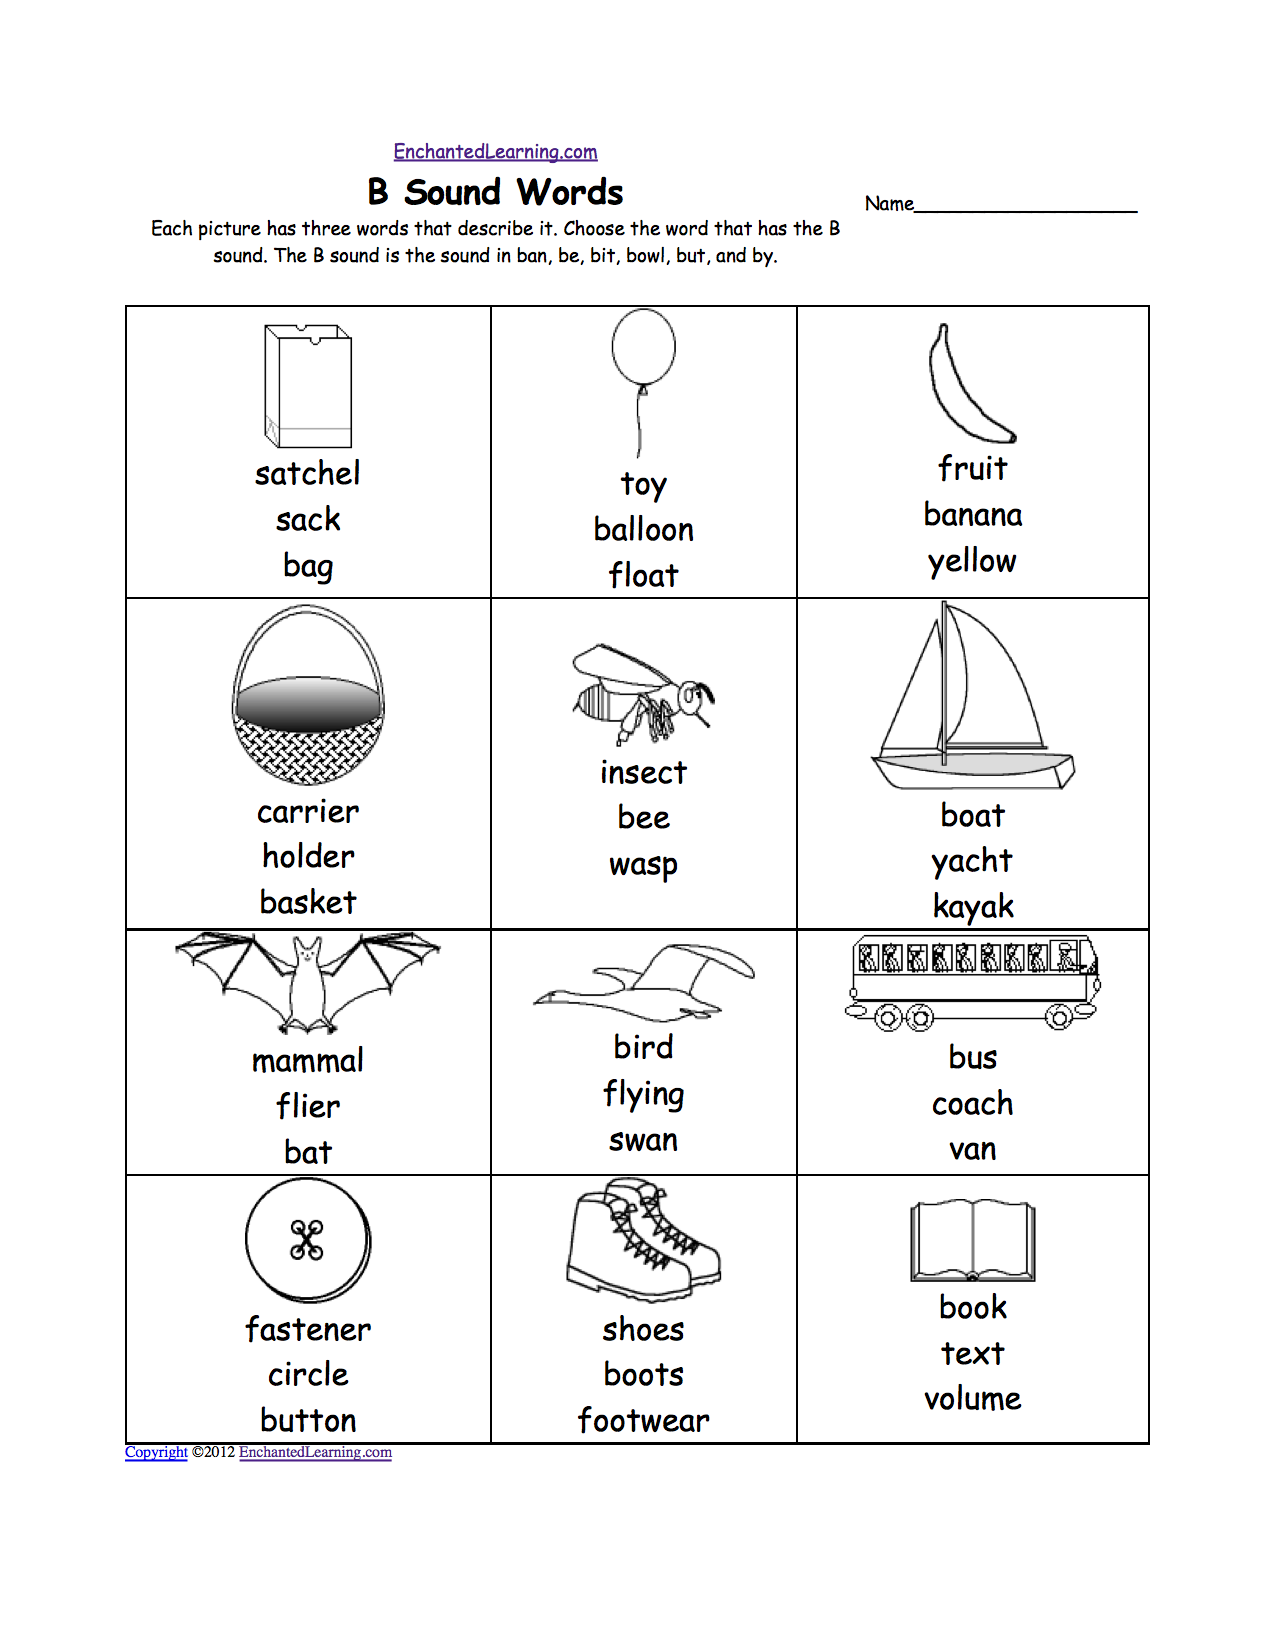 Proatmealus  Marvelous Phonics Worksheets Multiple Choice Worksheets To Print  With Handsome Quotbquot Sound Phonics Worksheet Multiple Choice Each Picture Has Three Words That Describe It Choose The Word That Has A Quotbquot Sound The Quotbquot Sound Is The Sound  With Delectable Myself Worksheets Printables Also Decimal By Decimal Division Worksheets In Addition Life Skills Math Worksheets Free And Punctuation Grammar Worksheets As Well As Metric Conversion Worksheets With Answers Additionally Basic Math Printable Worksheets From Enchantedlearningcom With Proatmealus  Handsome Phonics Worksheets Multiple Choice Worksheets To Print  With Delectable Quotbquot Sound Phonics Worksheet Multiple Choice Each Picture Has Three Words That Describe It Choose The Word That Has A Quotbquot Sound The Quotbquot Sound Is The Sound  And Marvelous Myself Worksheets Printables Also Decimal By Decimal Division Worksheets In Addition Life Skills Math Worksheets Free From Enchantedlearningcom